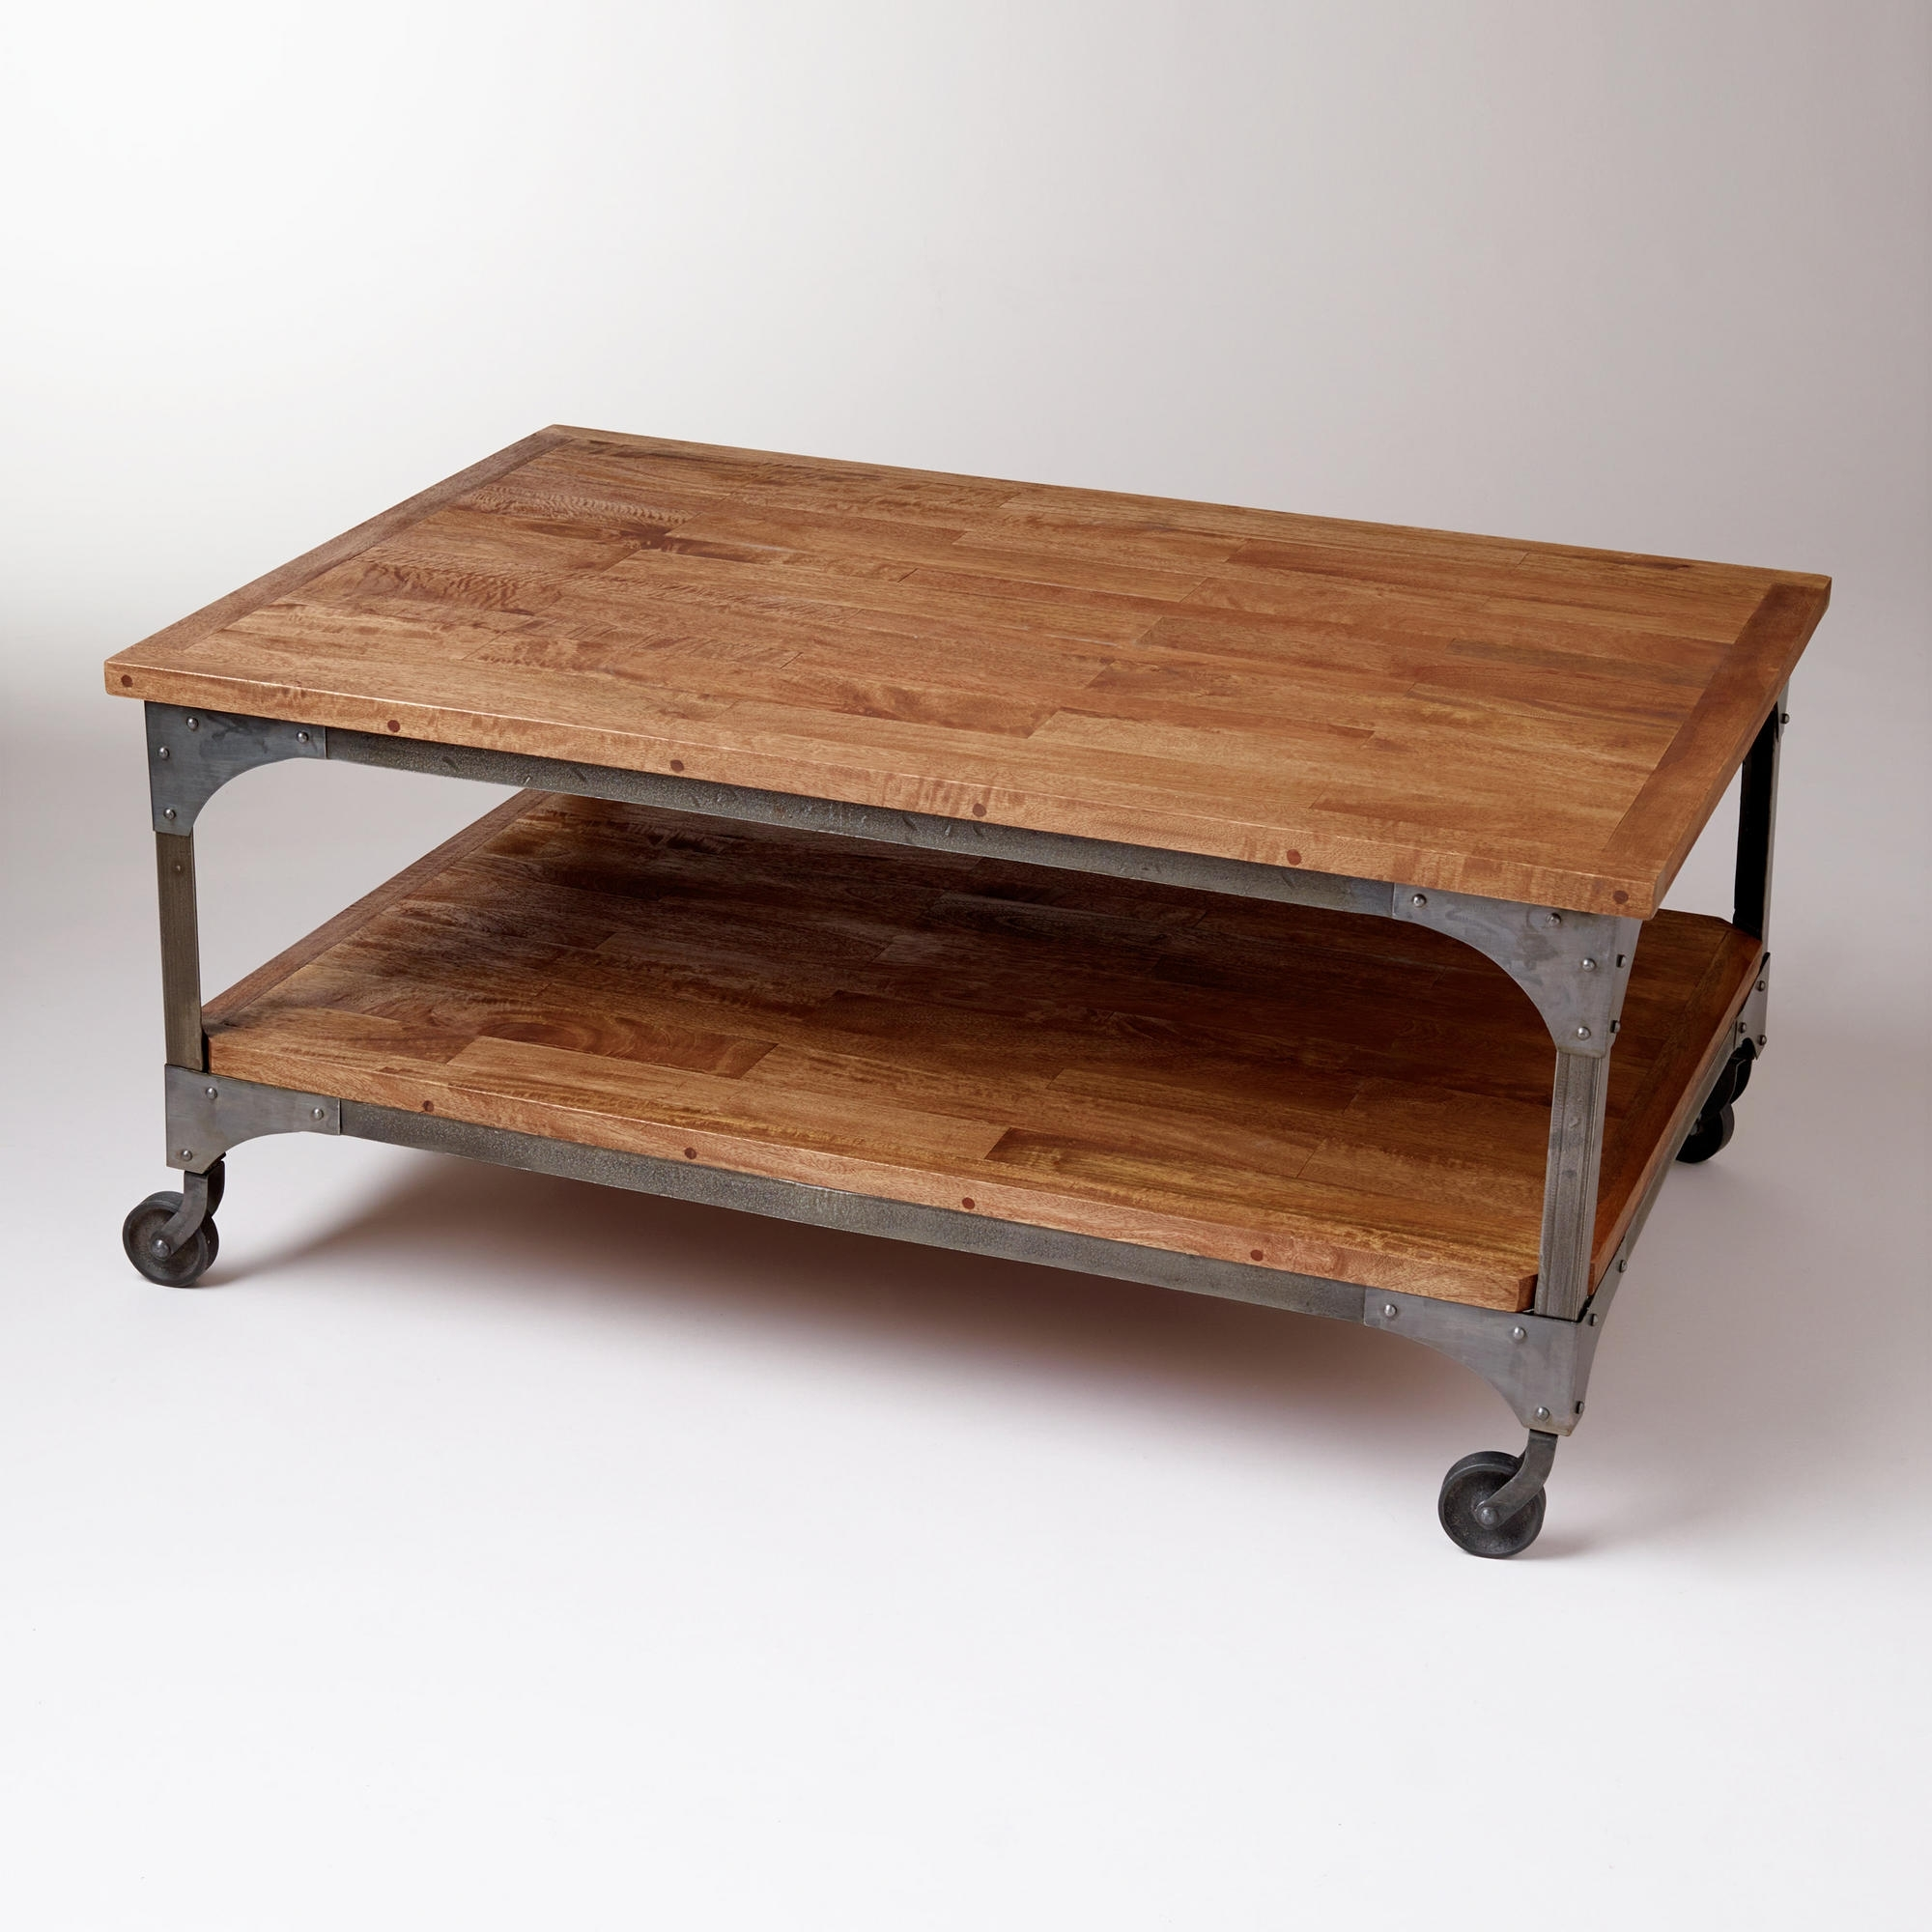 Coffee Table: Remarkable Coffee Tables With Wheels Coffee Table For Most Popular Natural Wheel Coffee Tables (View 8 of 20)